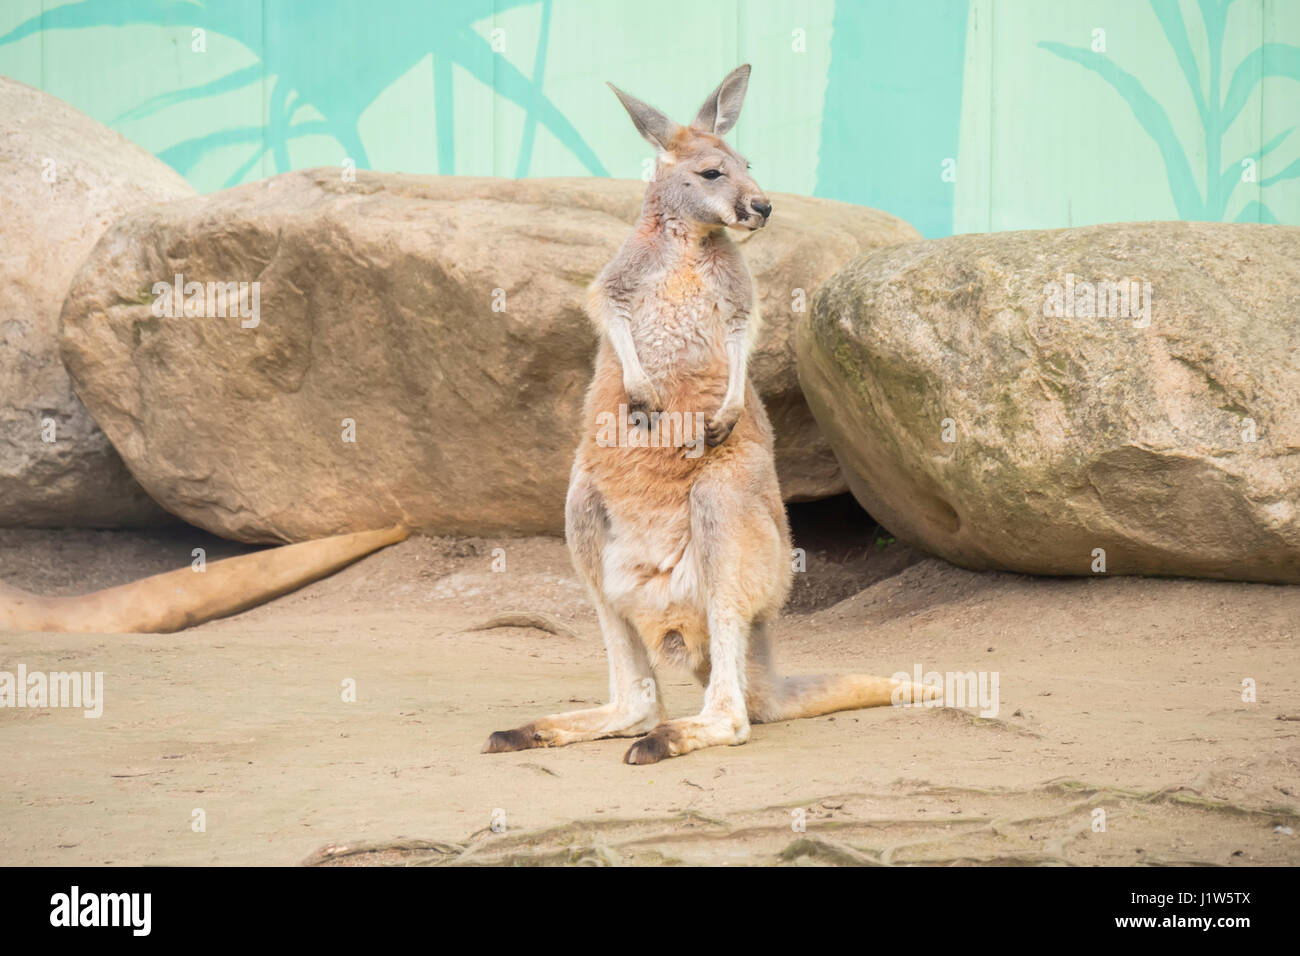 Kangourou rouge, Macropus rufus Photo Stock